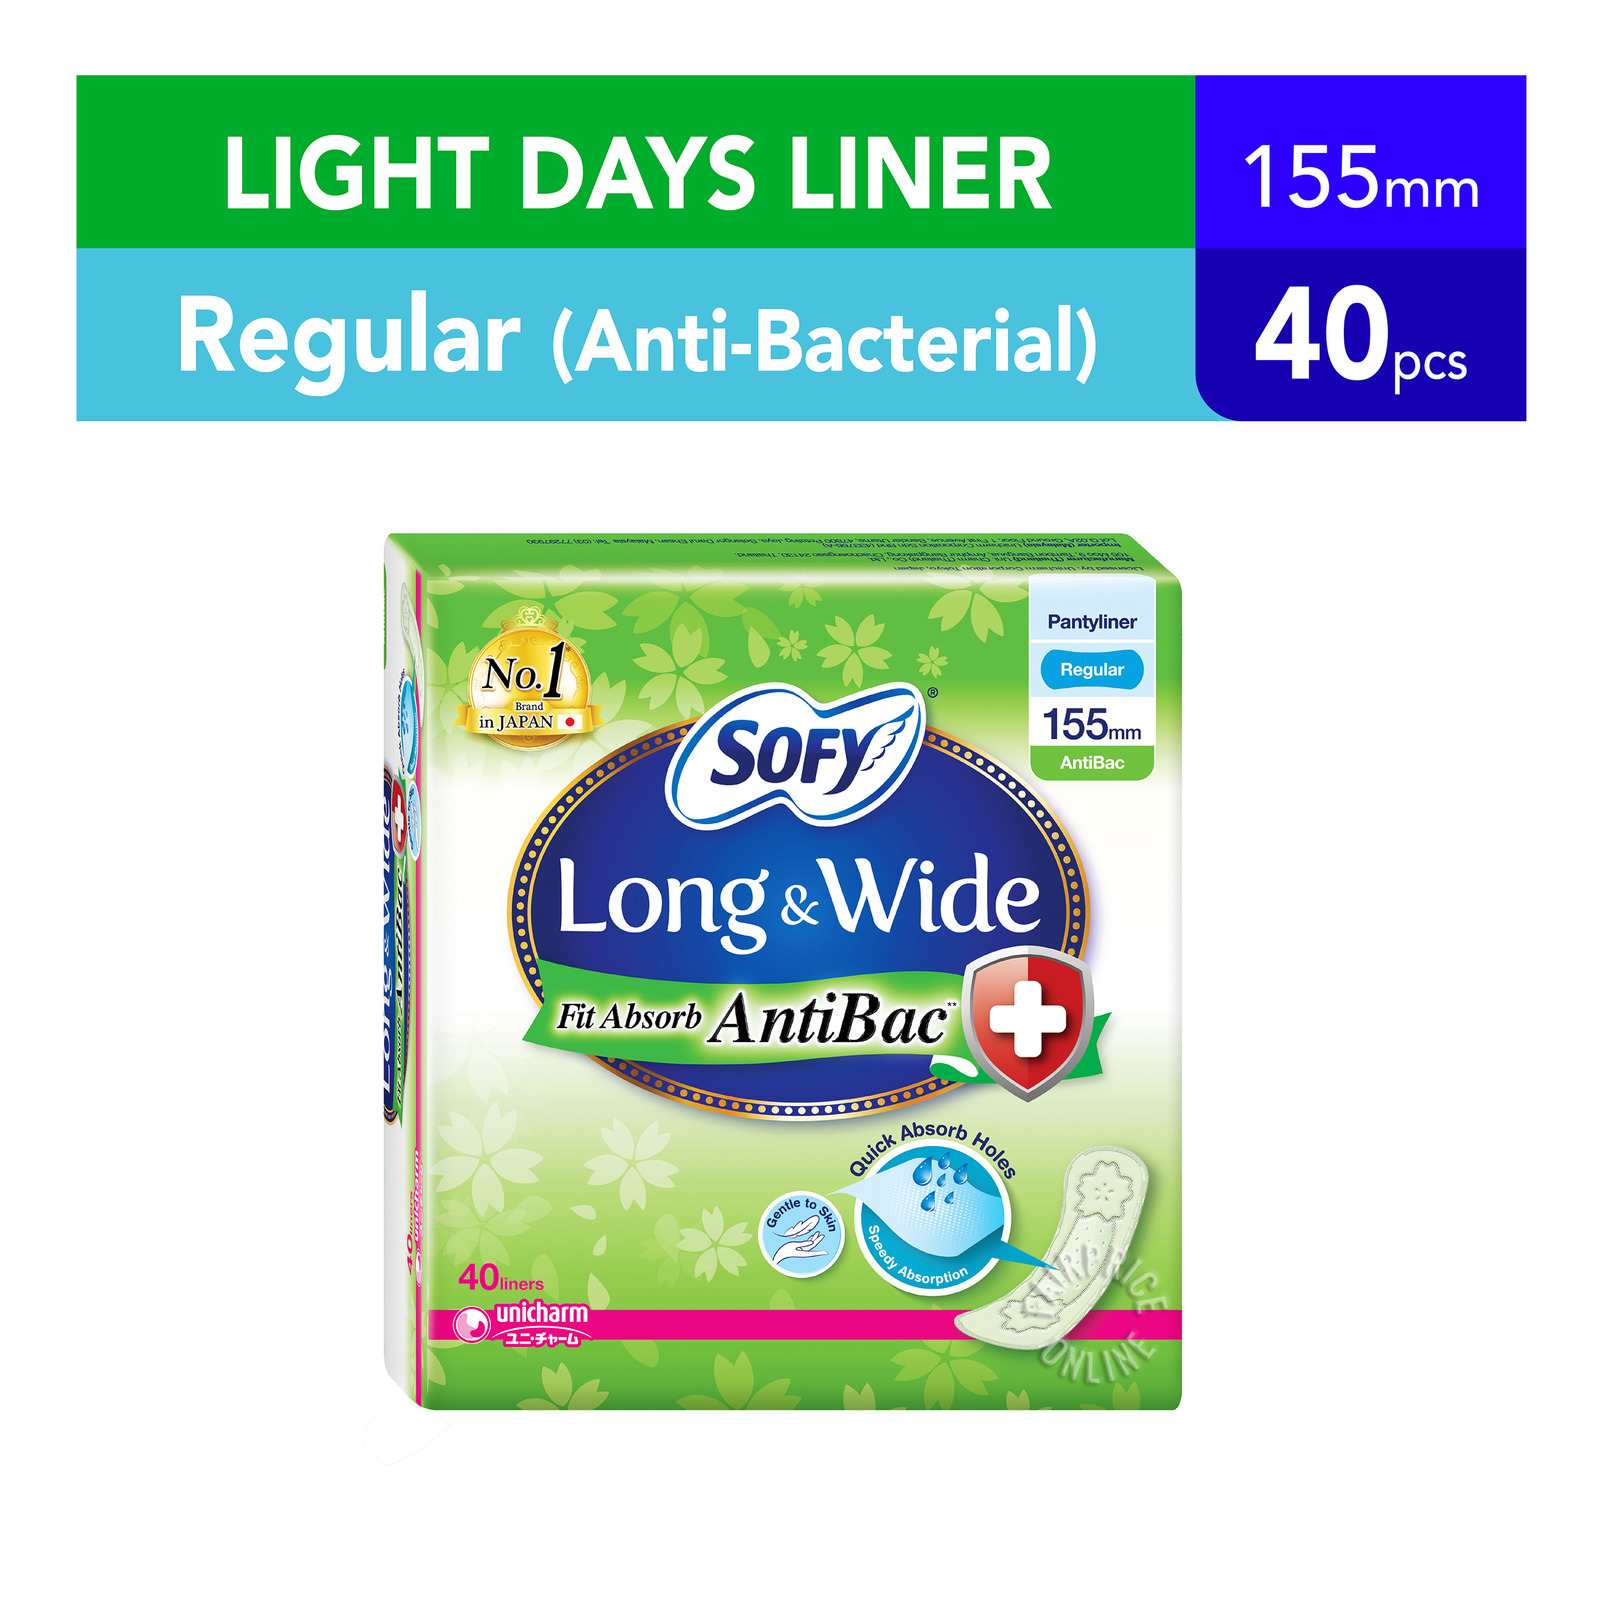 Sofy Long & Wide Pantyliners - Fit Absorb (Anti Bacterial)